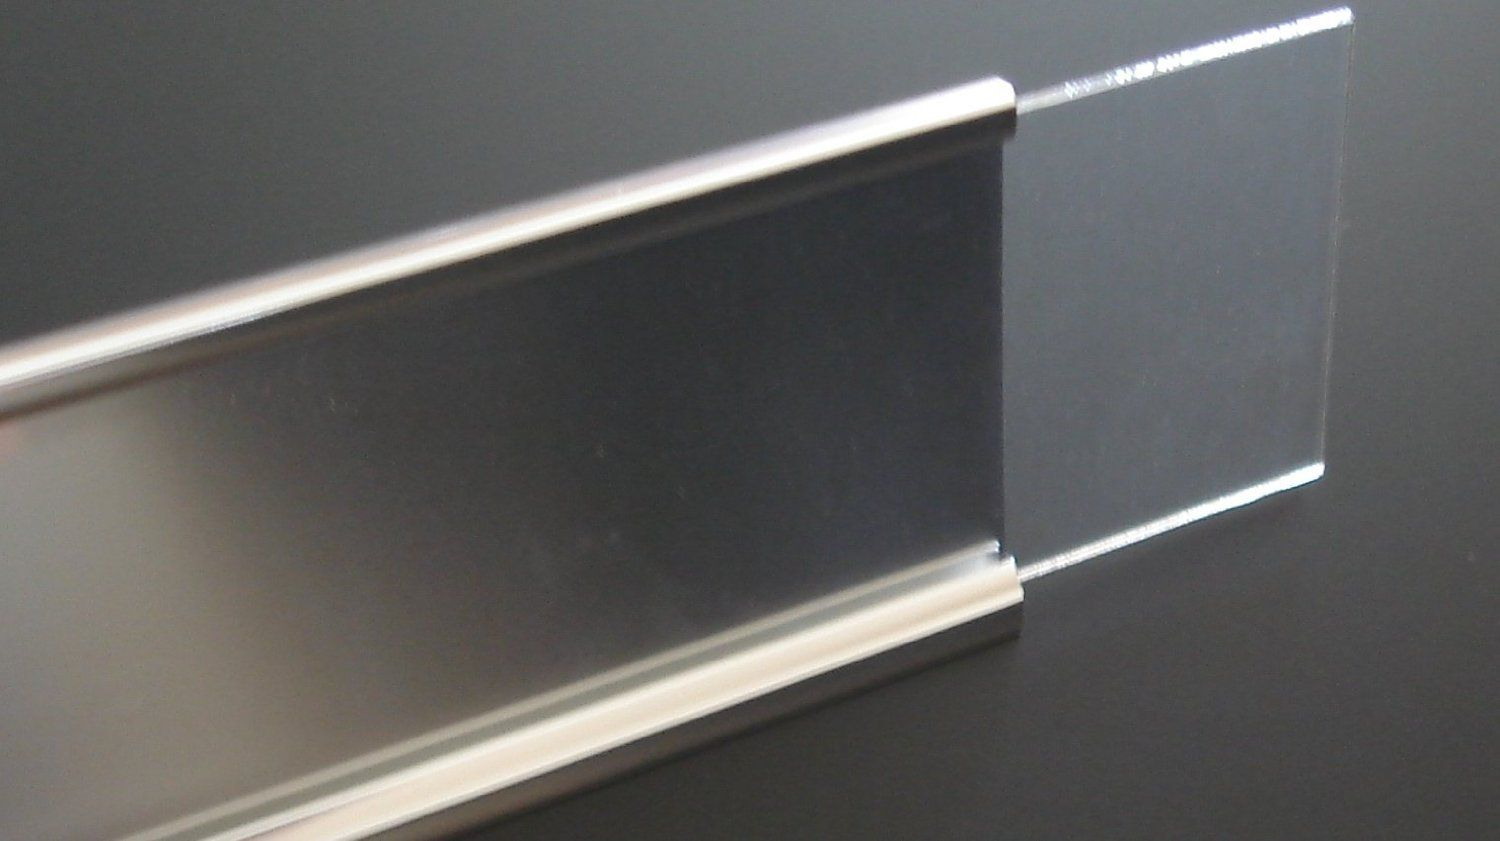 Amazon Com 2x8 Wall Name Plate Holder With Clear Plastic Insert Make Your Own Name Plates Comes In Black Silver Or Plate Holder Name Plate Cubicle Design